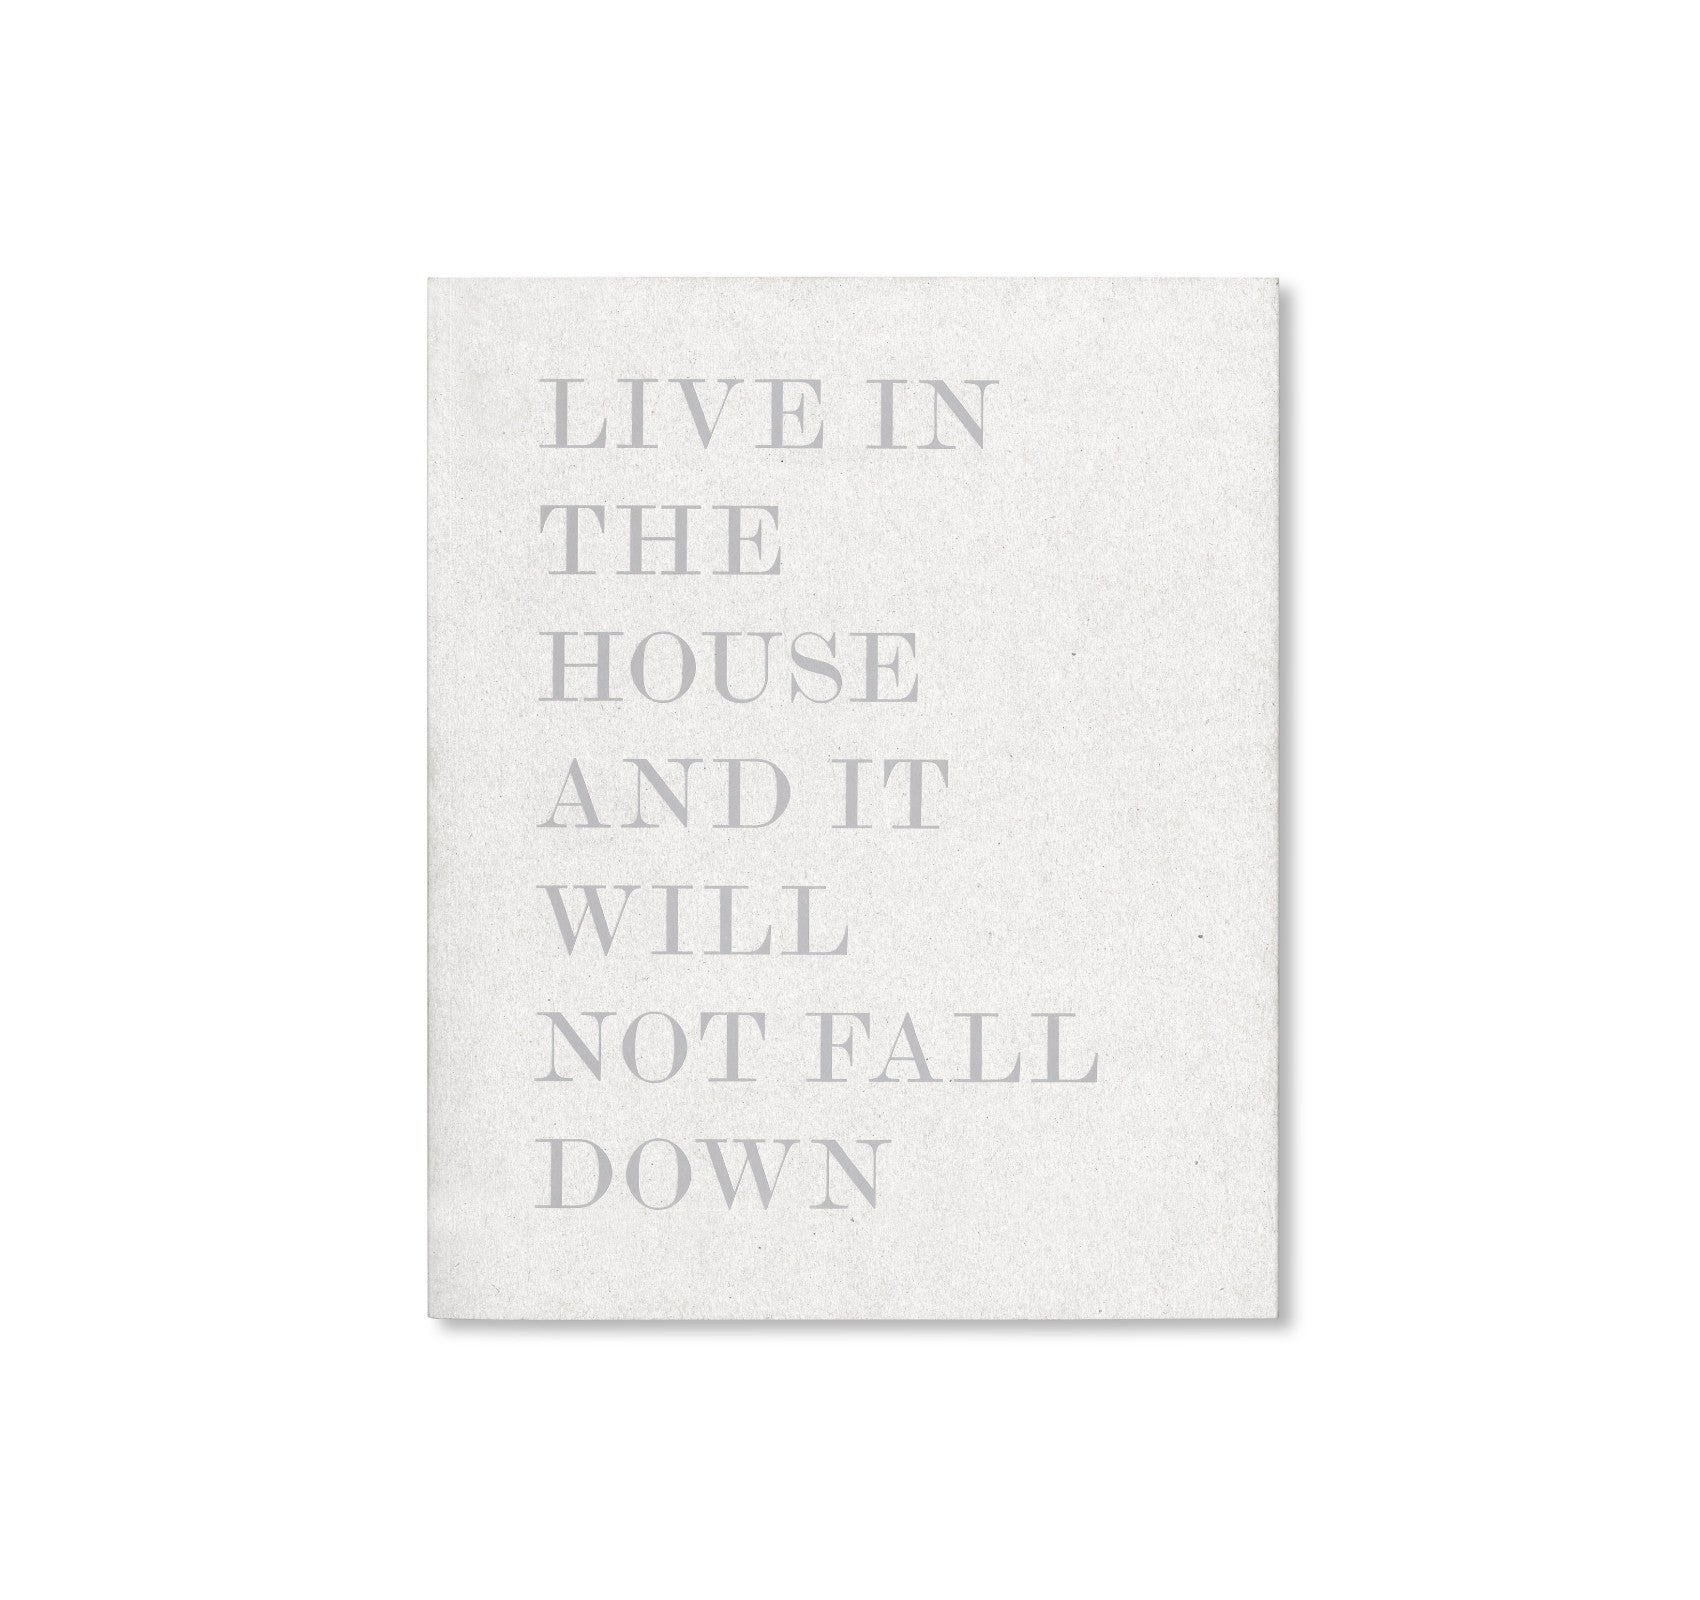 LIVE IN THE HOUSE AND IT WILL NOT FALL DOWN by Alessandro Laita + Chiaralice Rizzi